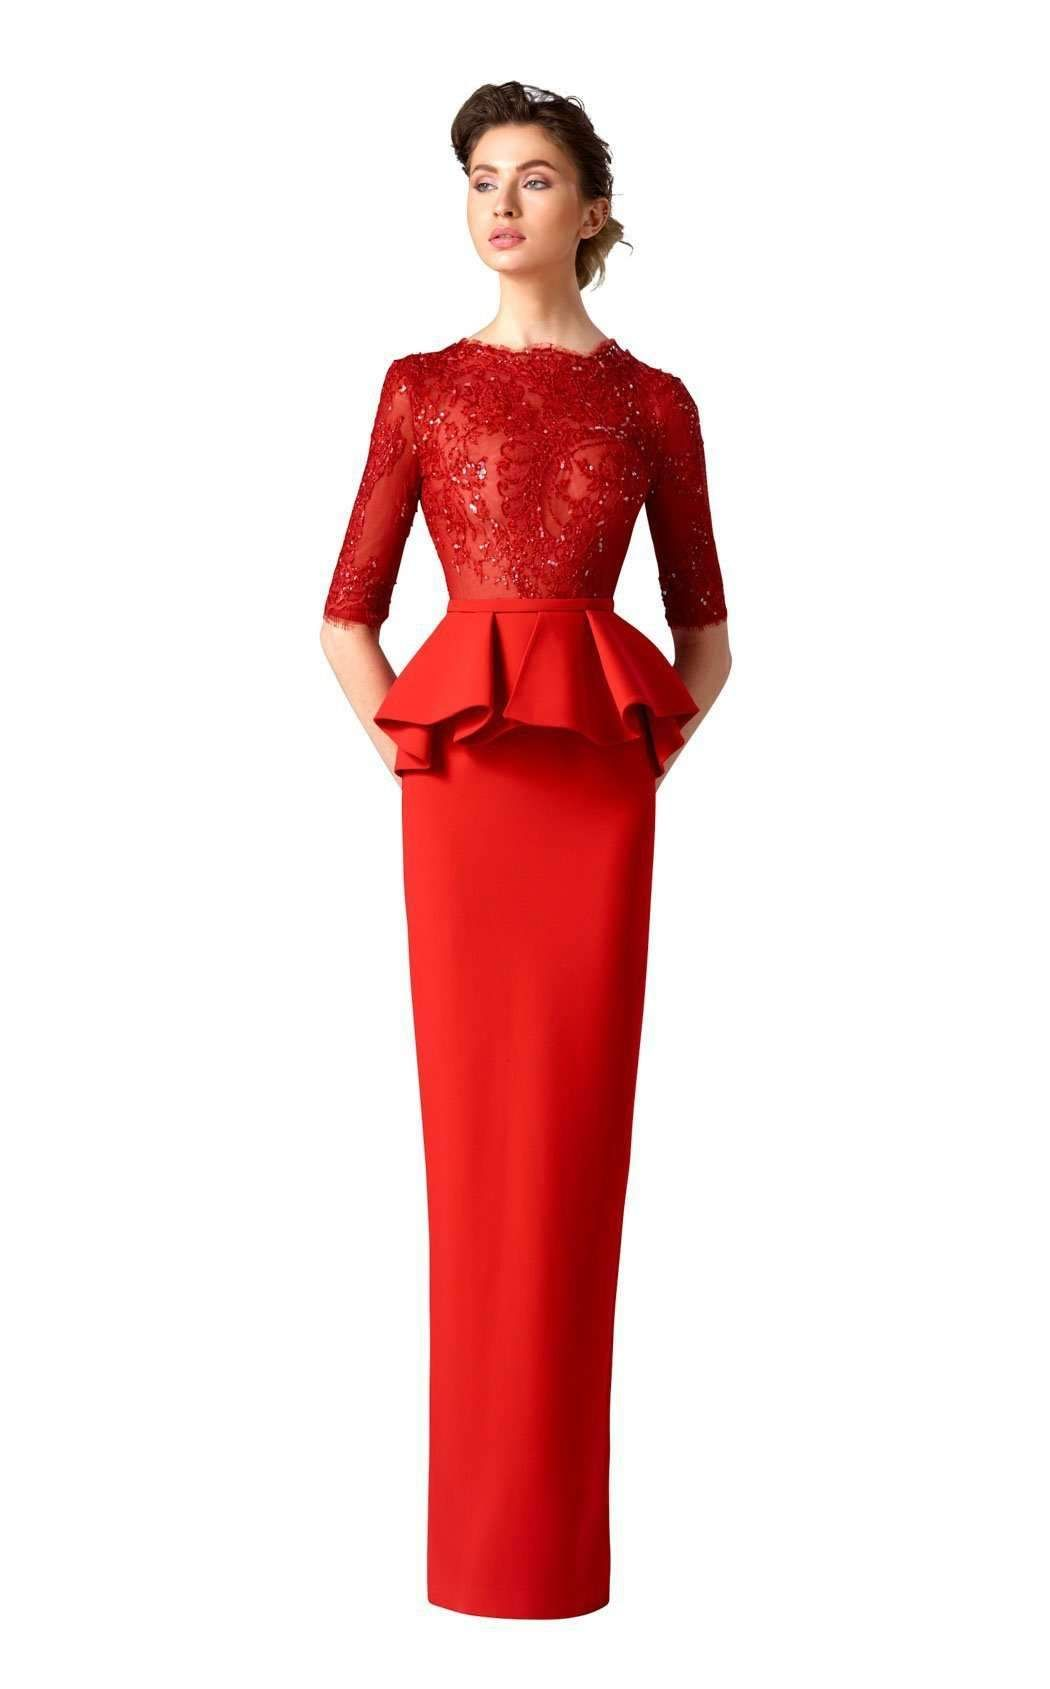 380bcc21a8d6 Edward Arsouni Couture 0296 Peplum Gown, Glamorous Evening Gowns, Slim  Waist, Gowns Online